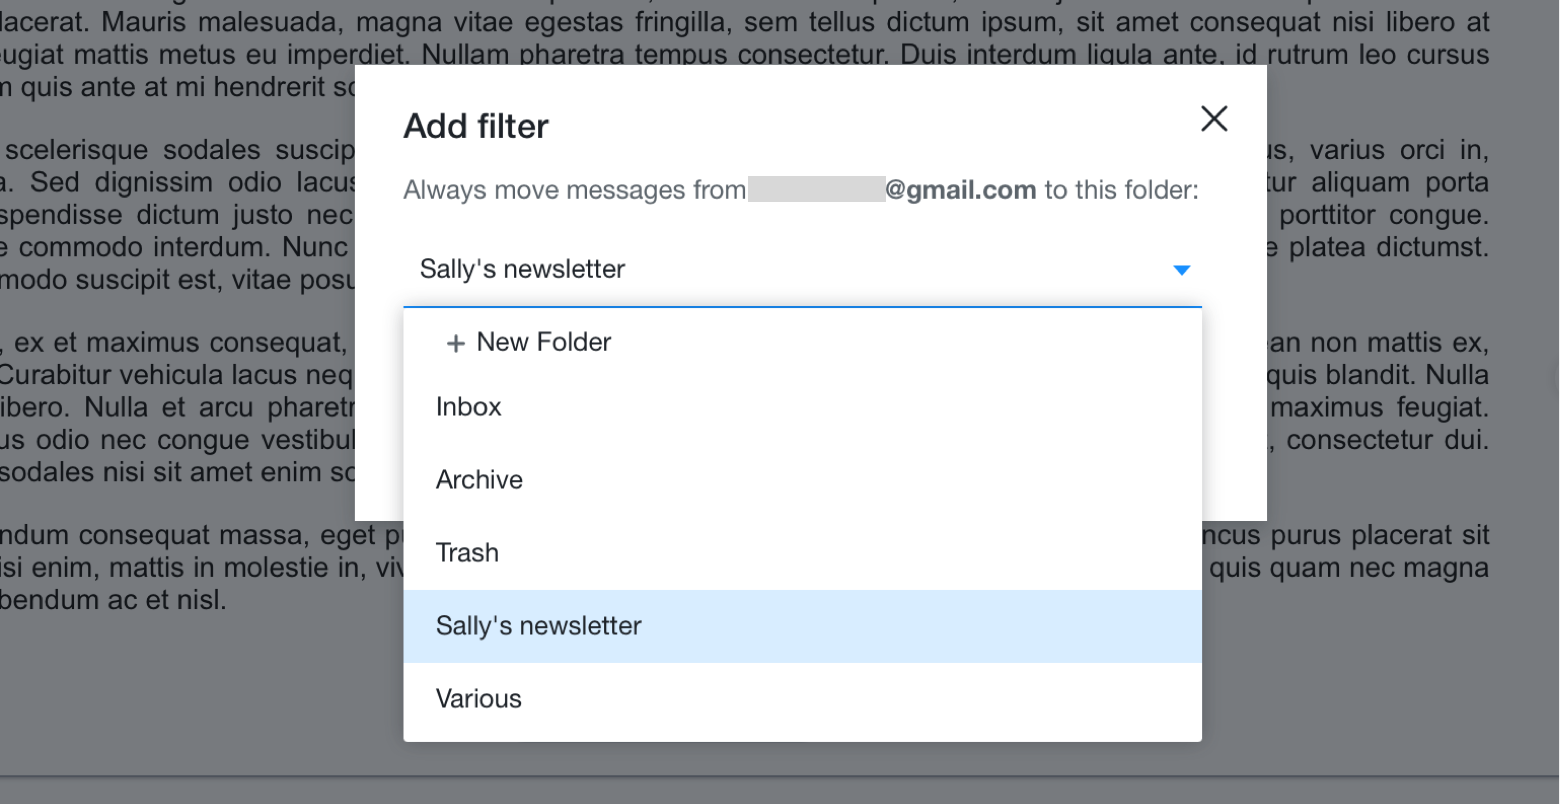 How to create a rule (filter) in Yahoo Mail